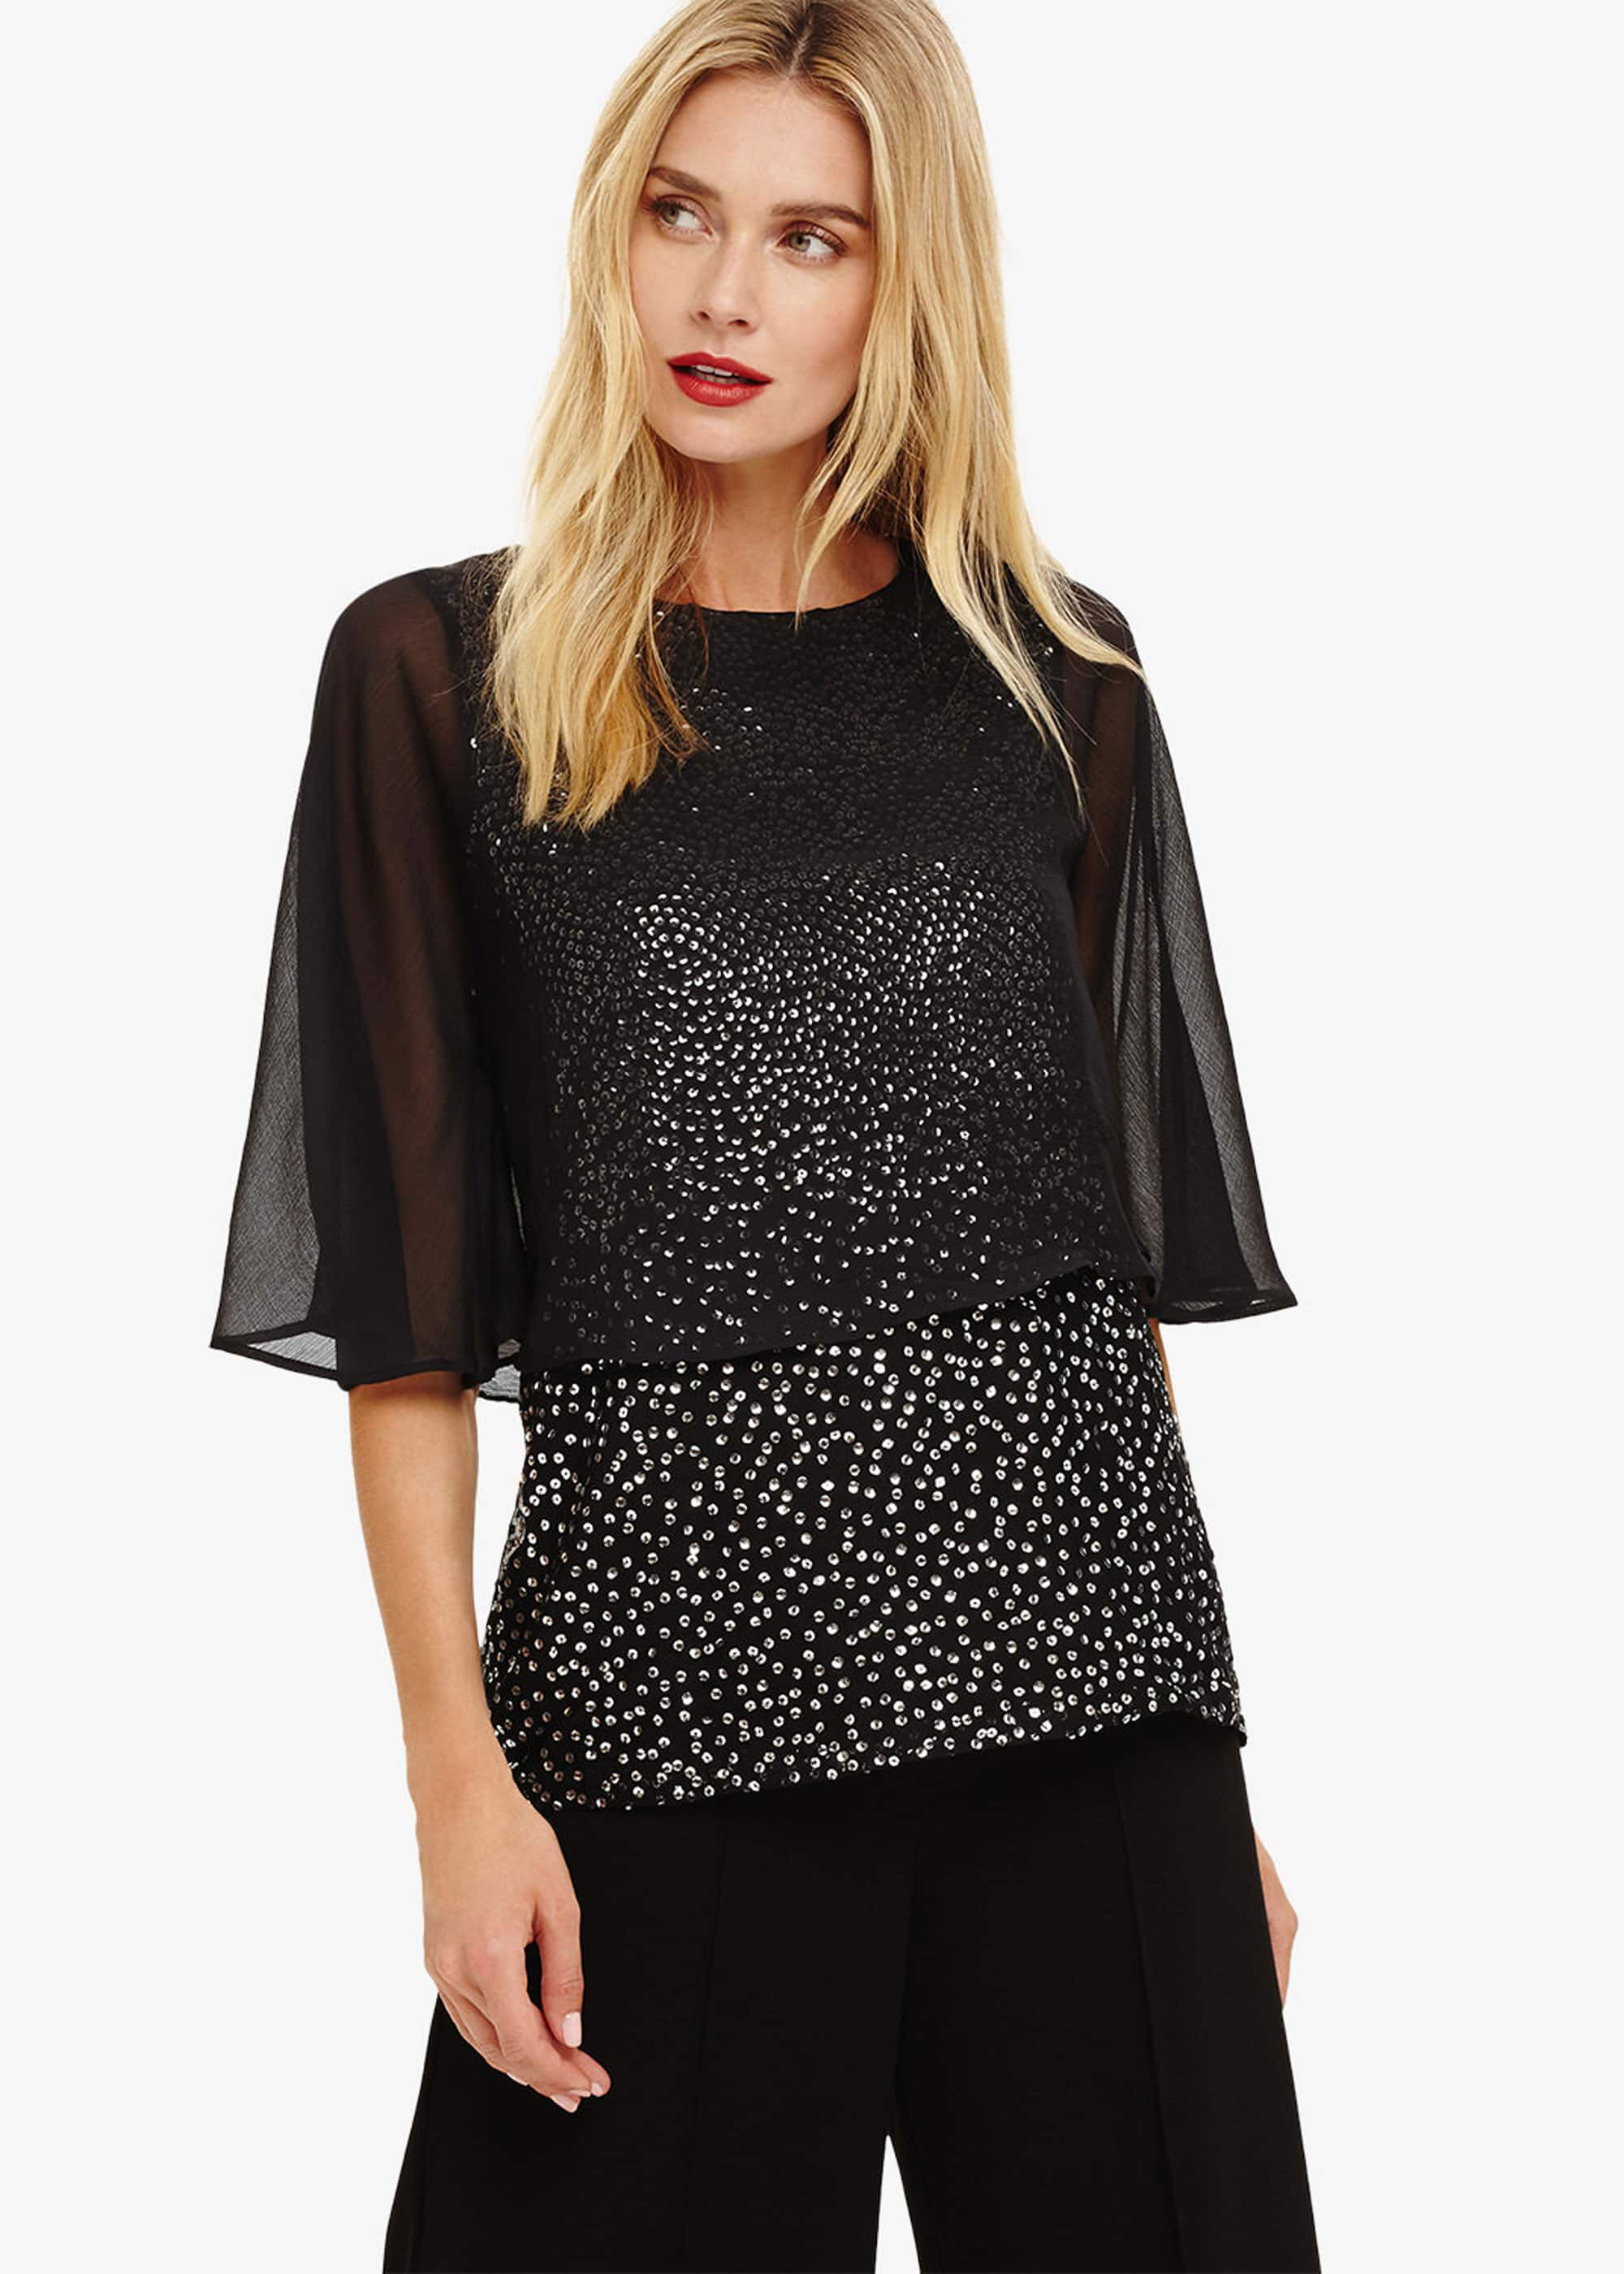 Phase Eight Iiona Double Layer Sequin Blouse, Black, Blouse